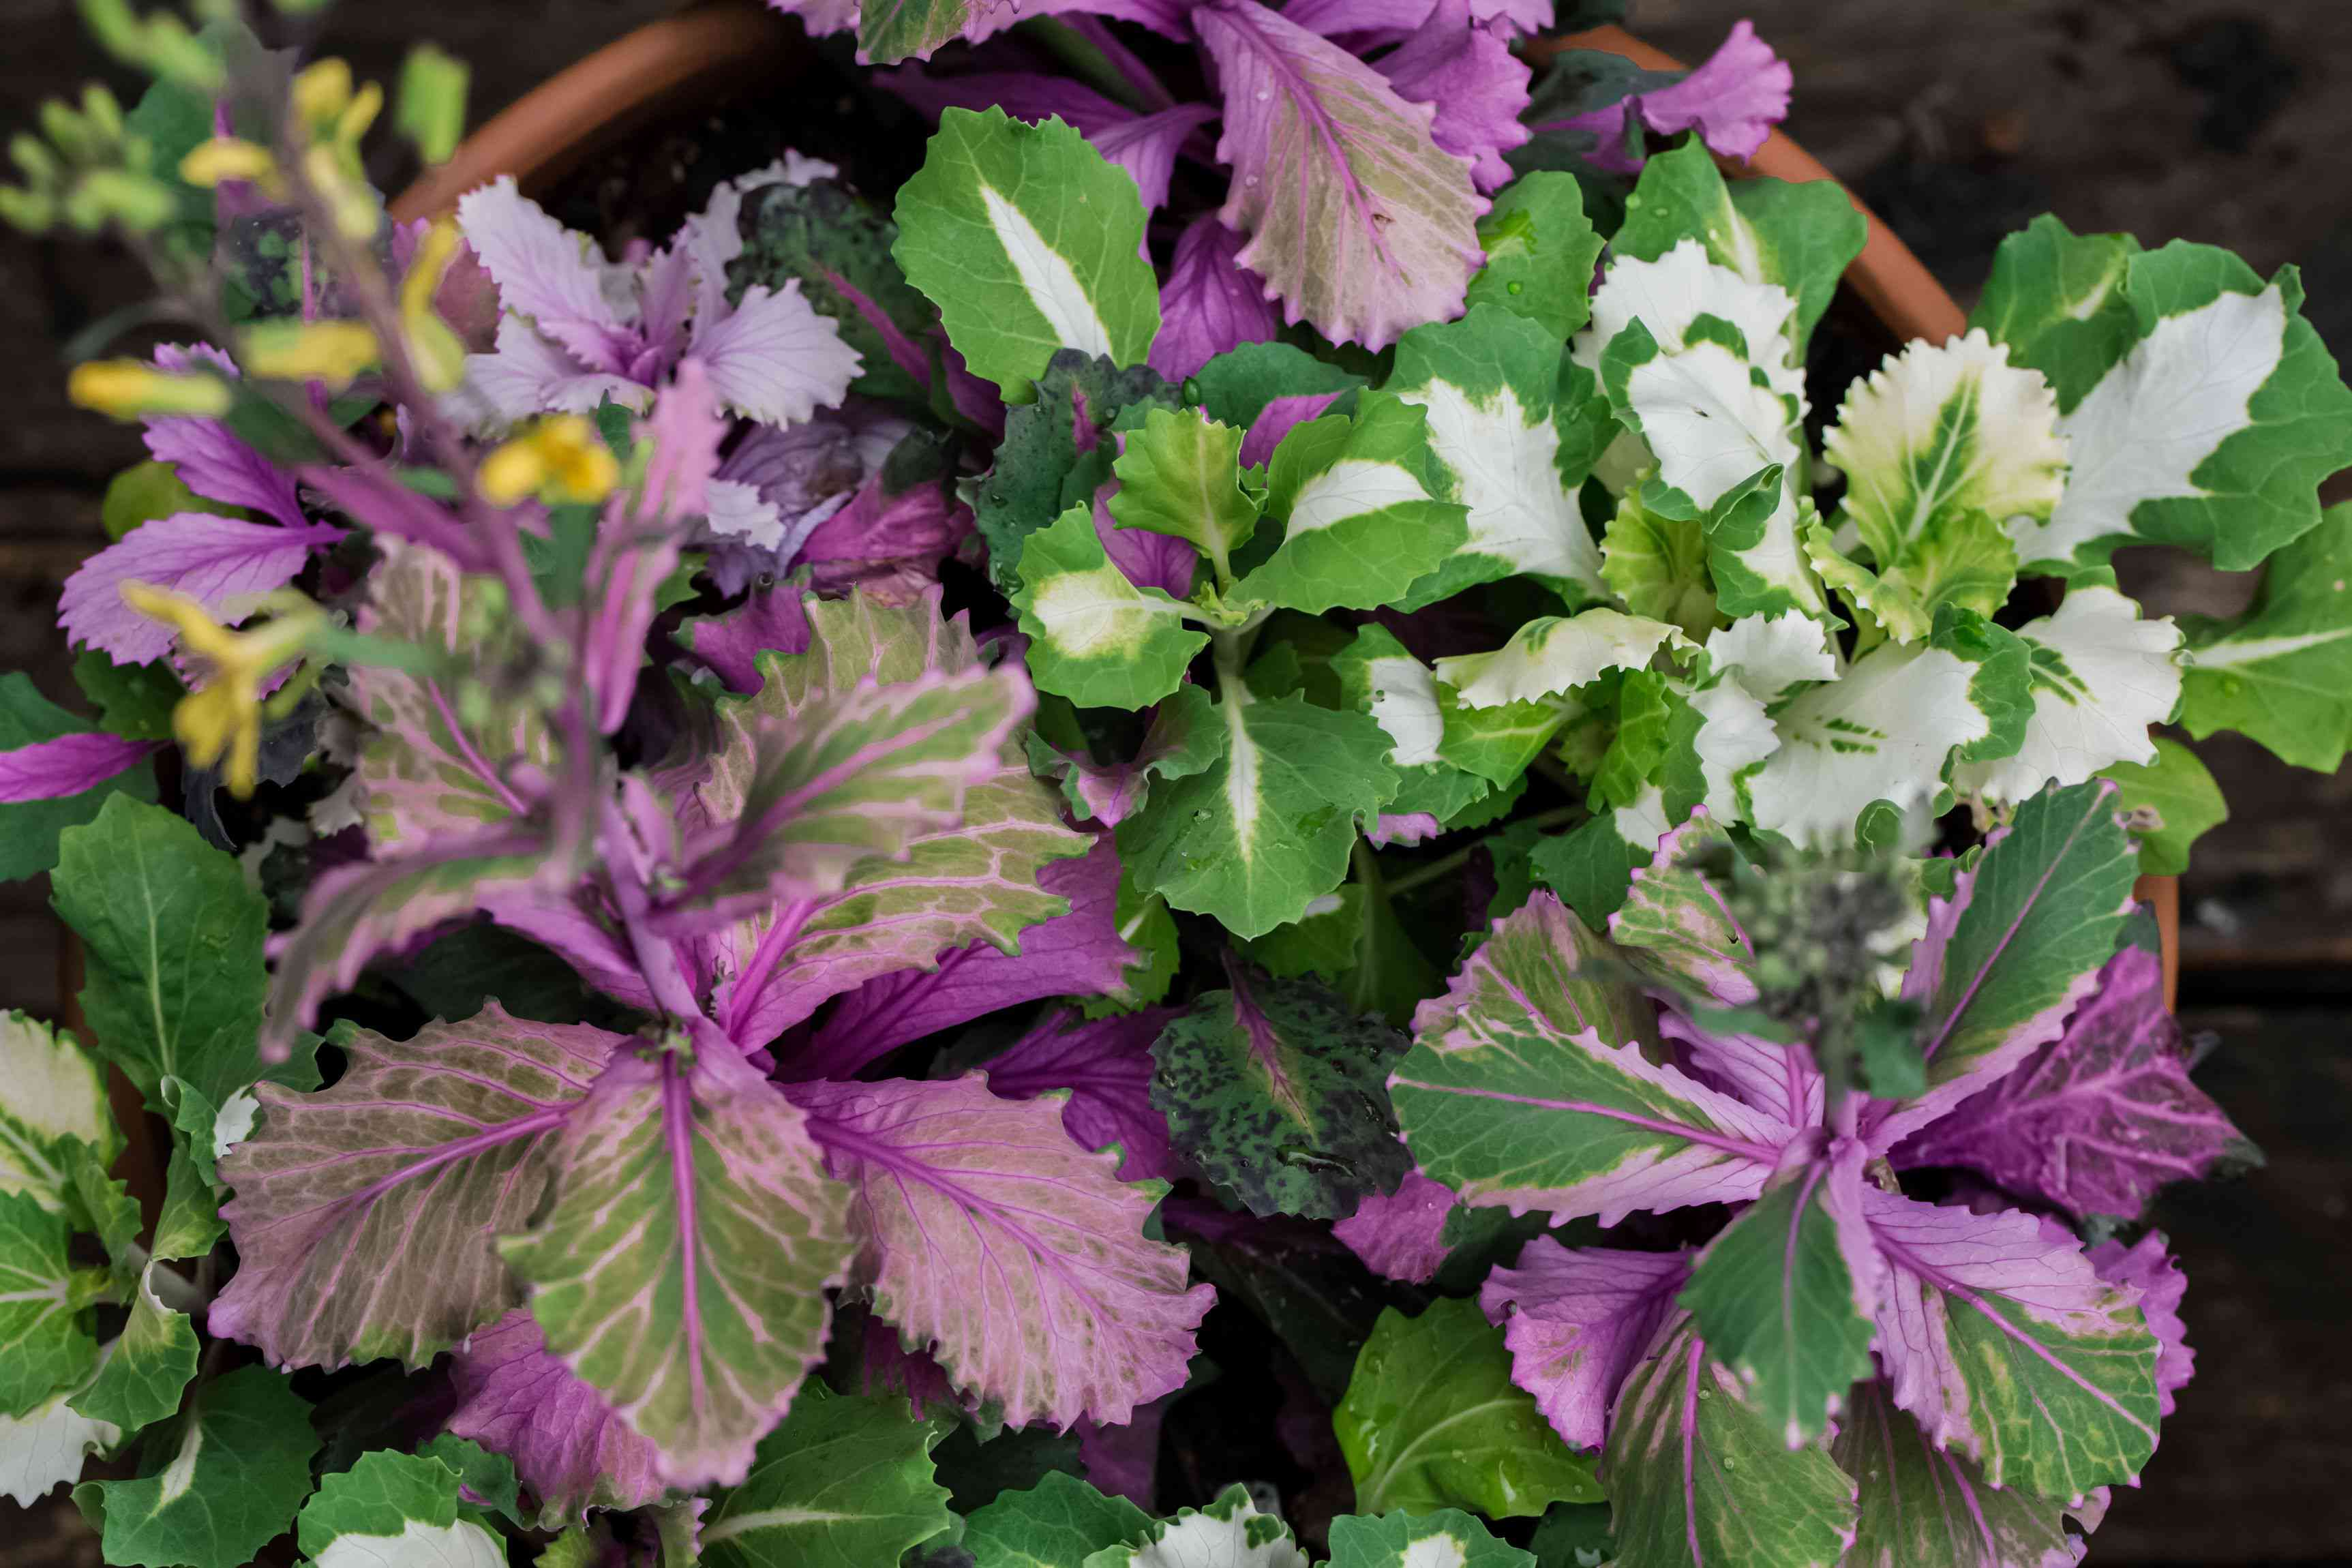 Kale plants with white, purple and green variegated ruffled leaves growing in pots